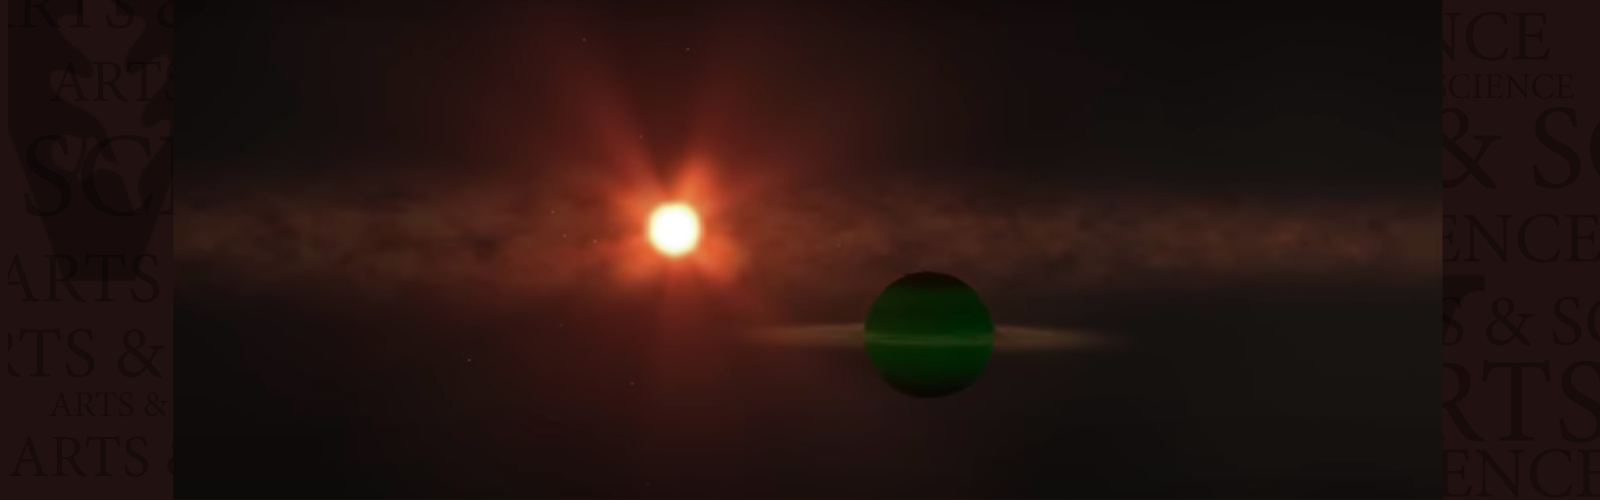 Vanderbilt astronomers among NASA's TESS Mission team to discover a rare newly formed planet